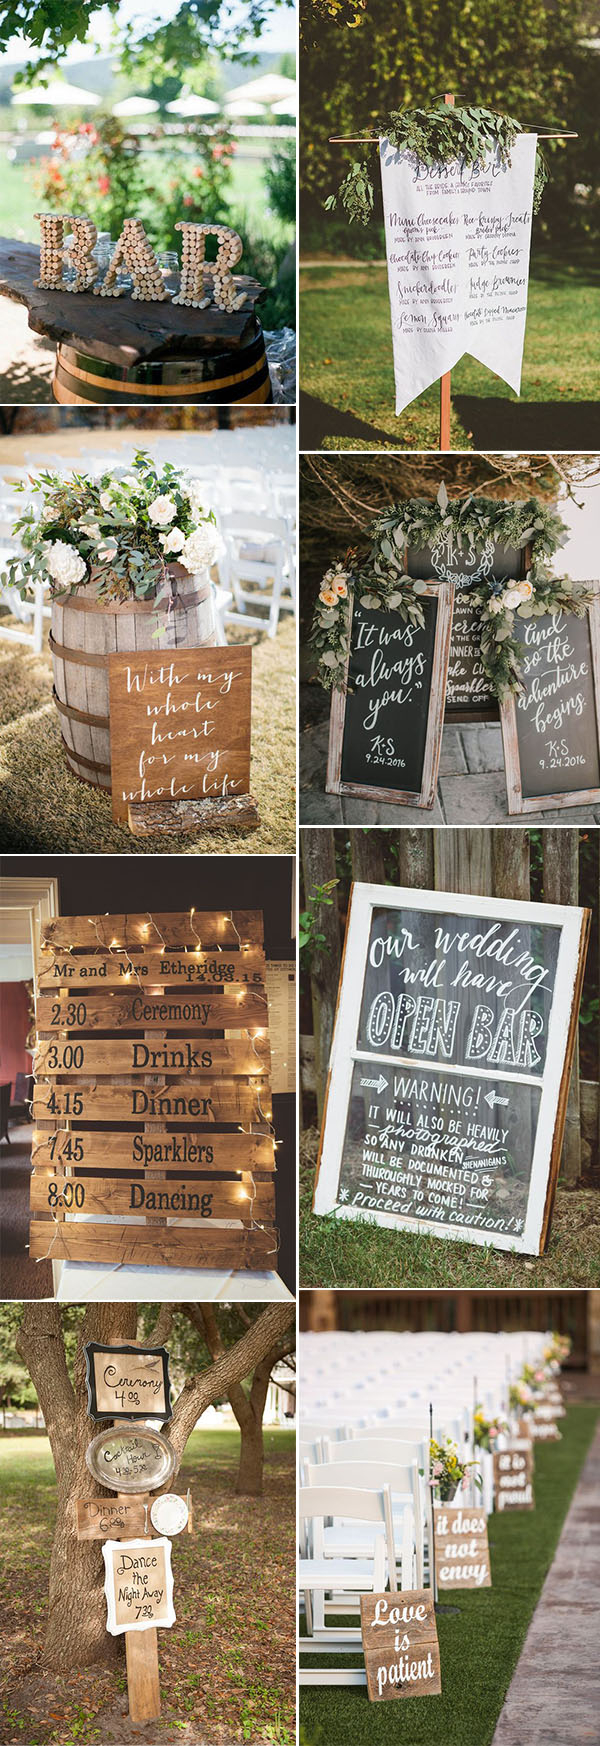 Wedding Signs Diy Pretty Budget Friendly Wedding Decorating Ideas 30 Easy To Do Rustic